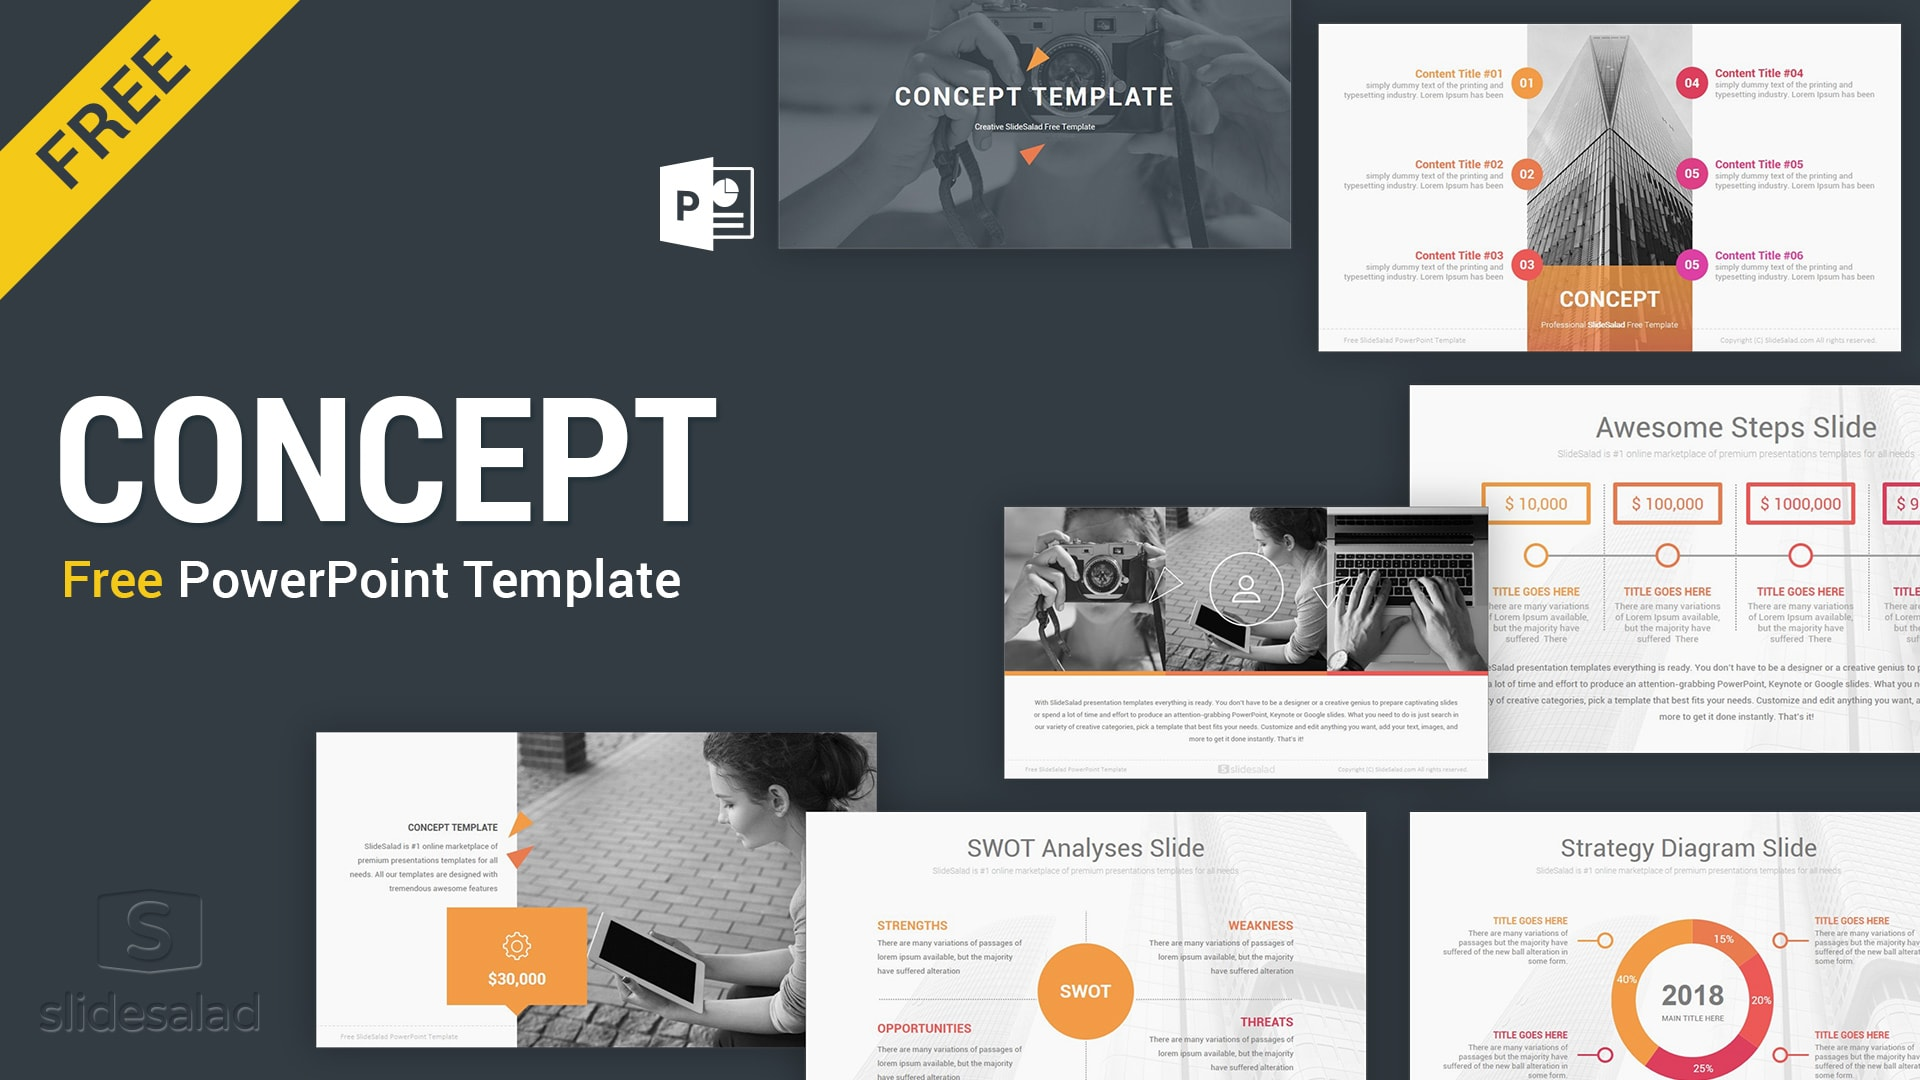 Free Download PowerPoint Templates